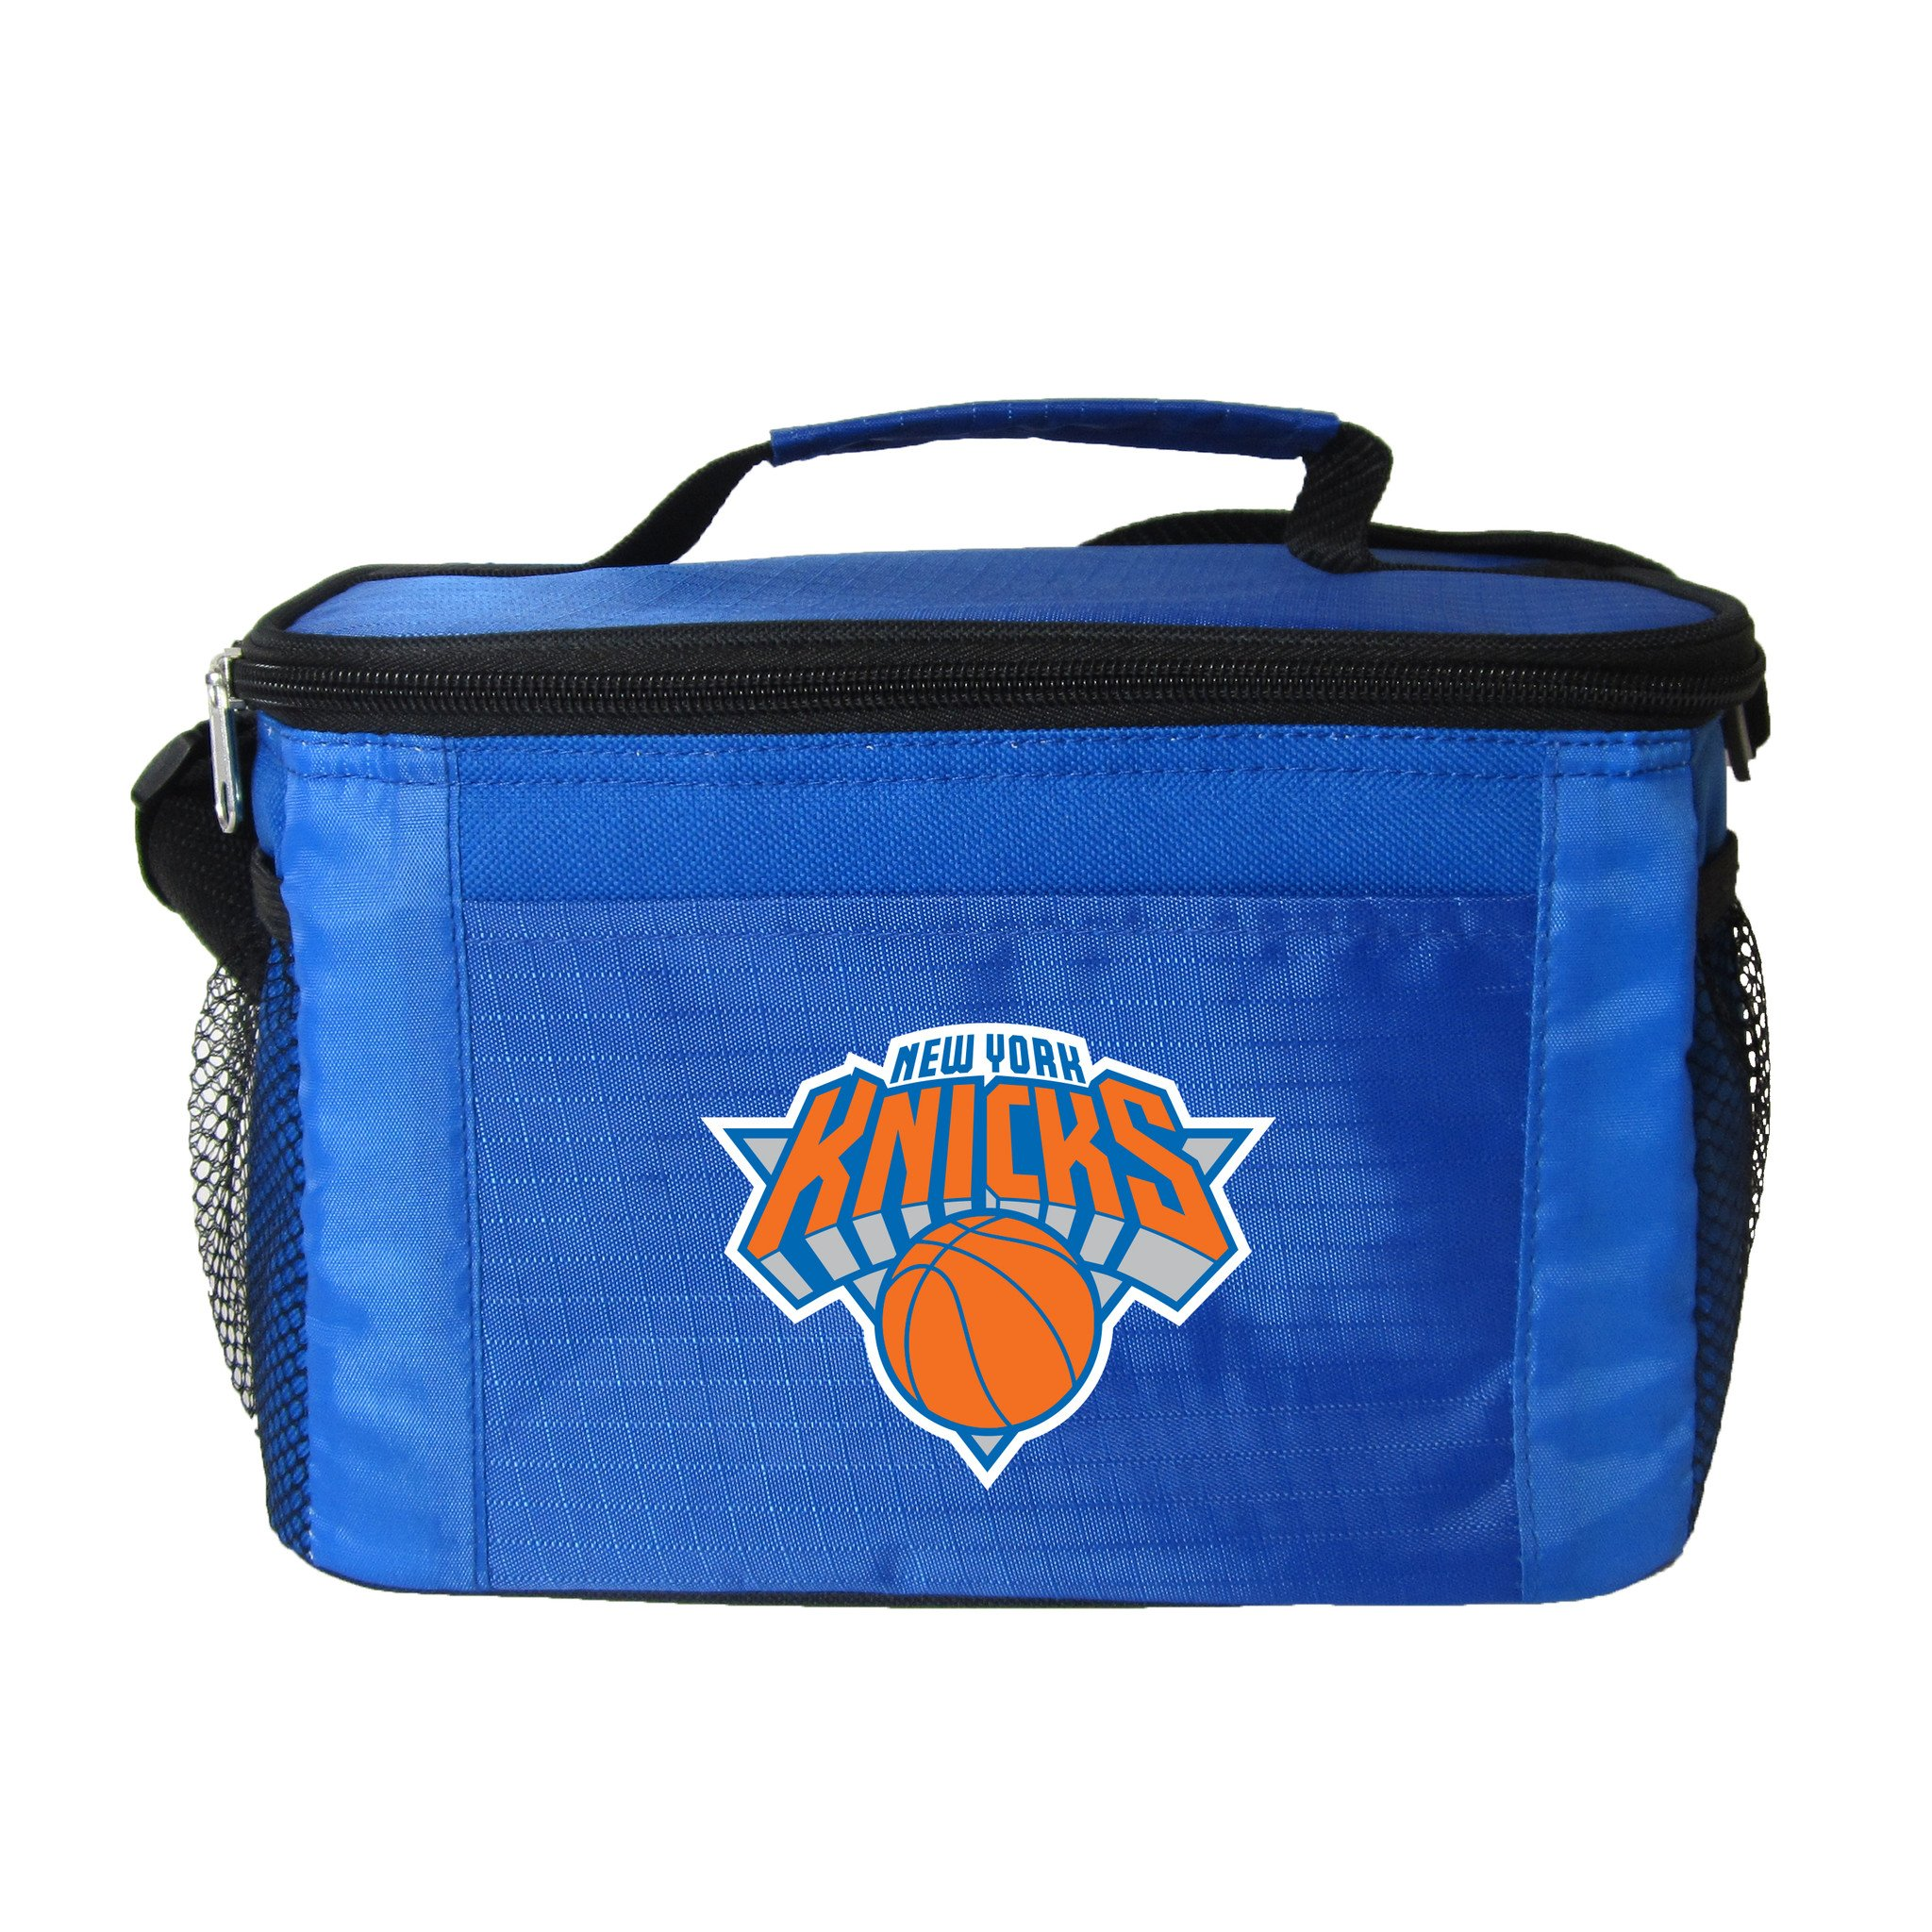 NBA New York Knicks 6 Can Cooler Bag